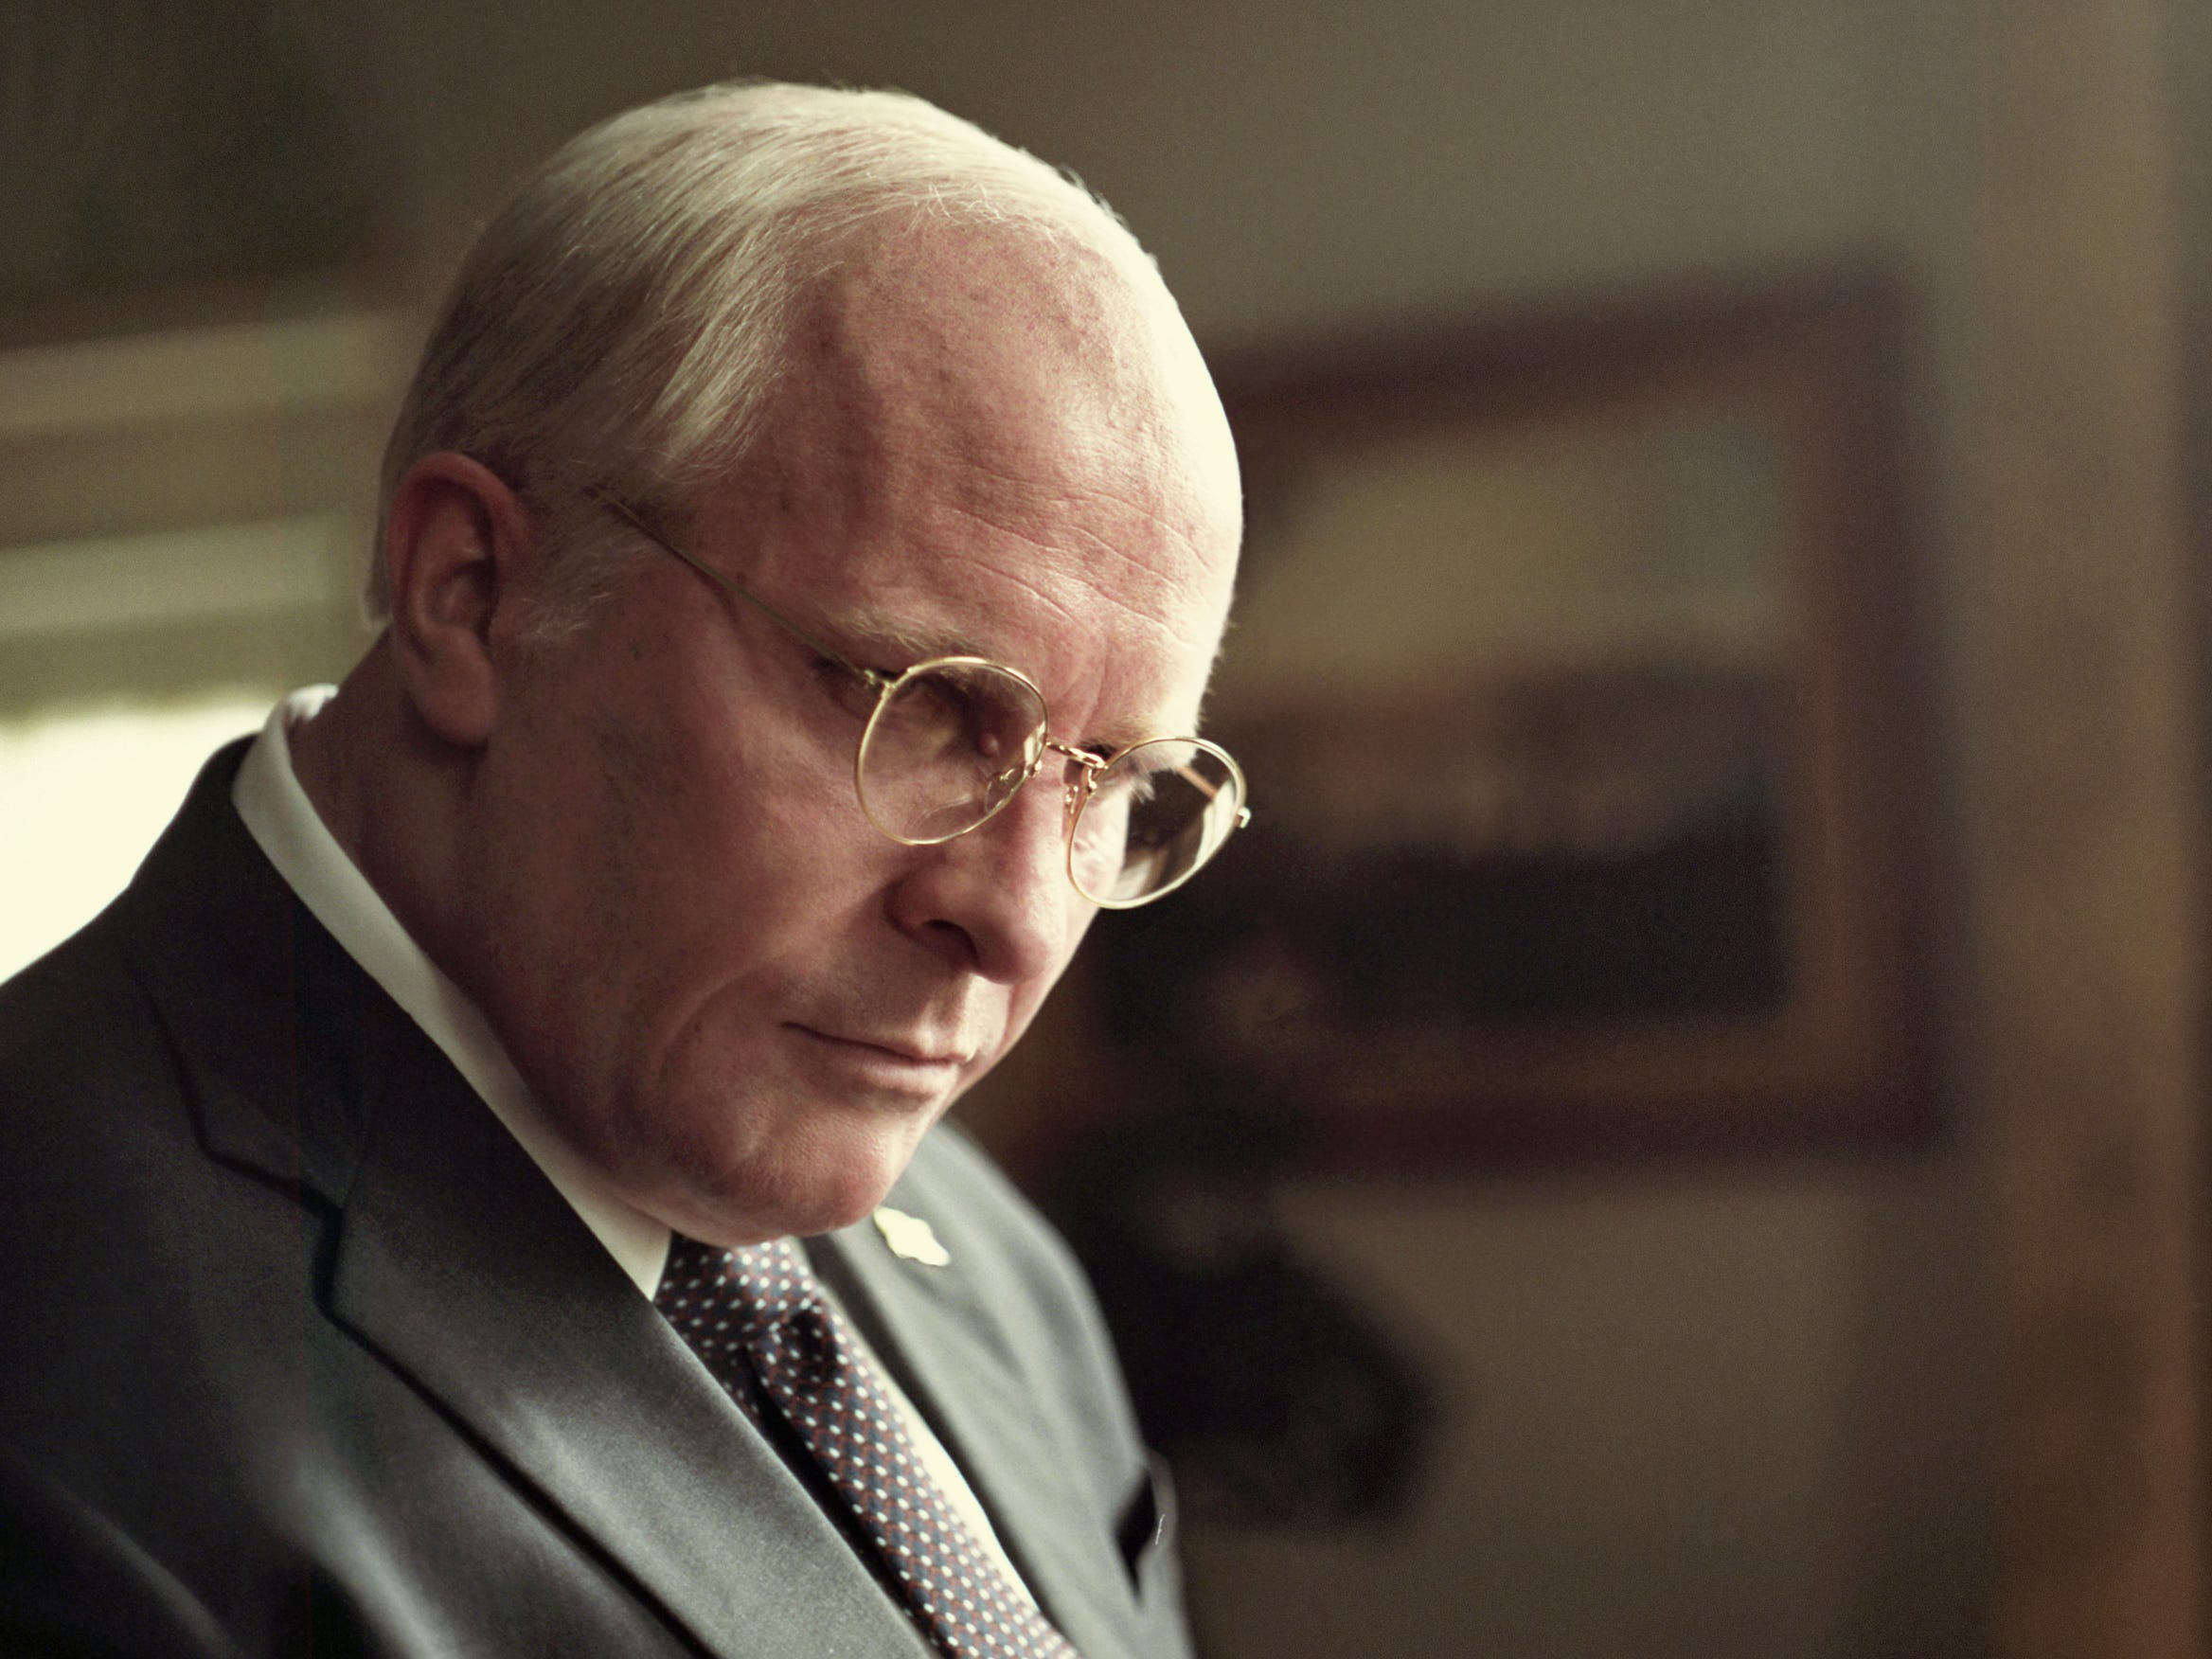 Christian Bale transforms to Dick Cheney in 'Vice'